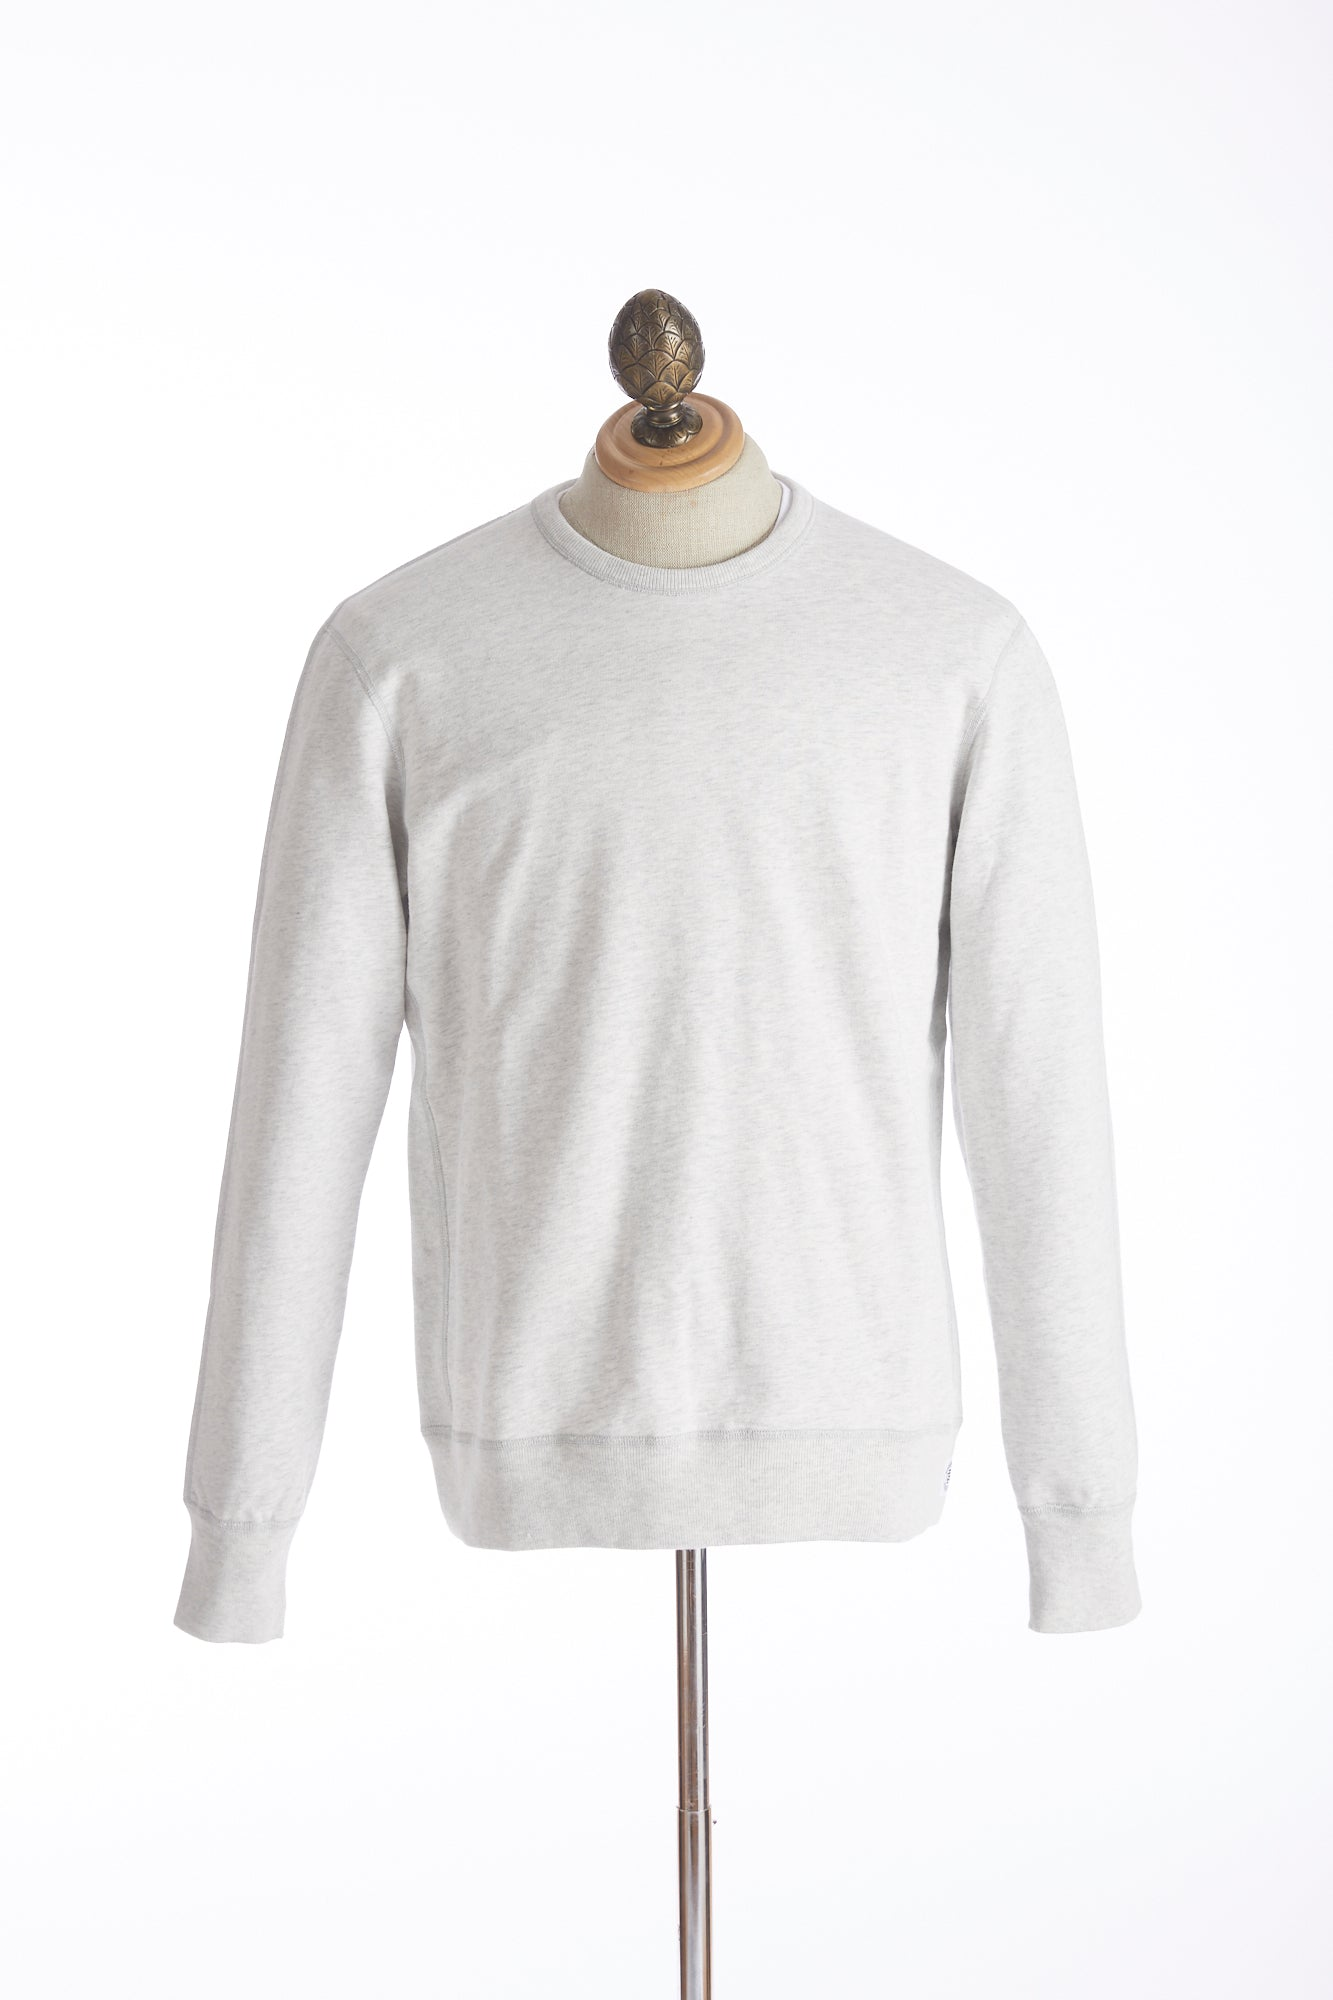 Reigning Champ Heather Ash Crewneck Sweater